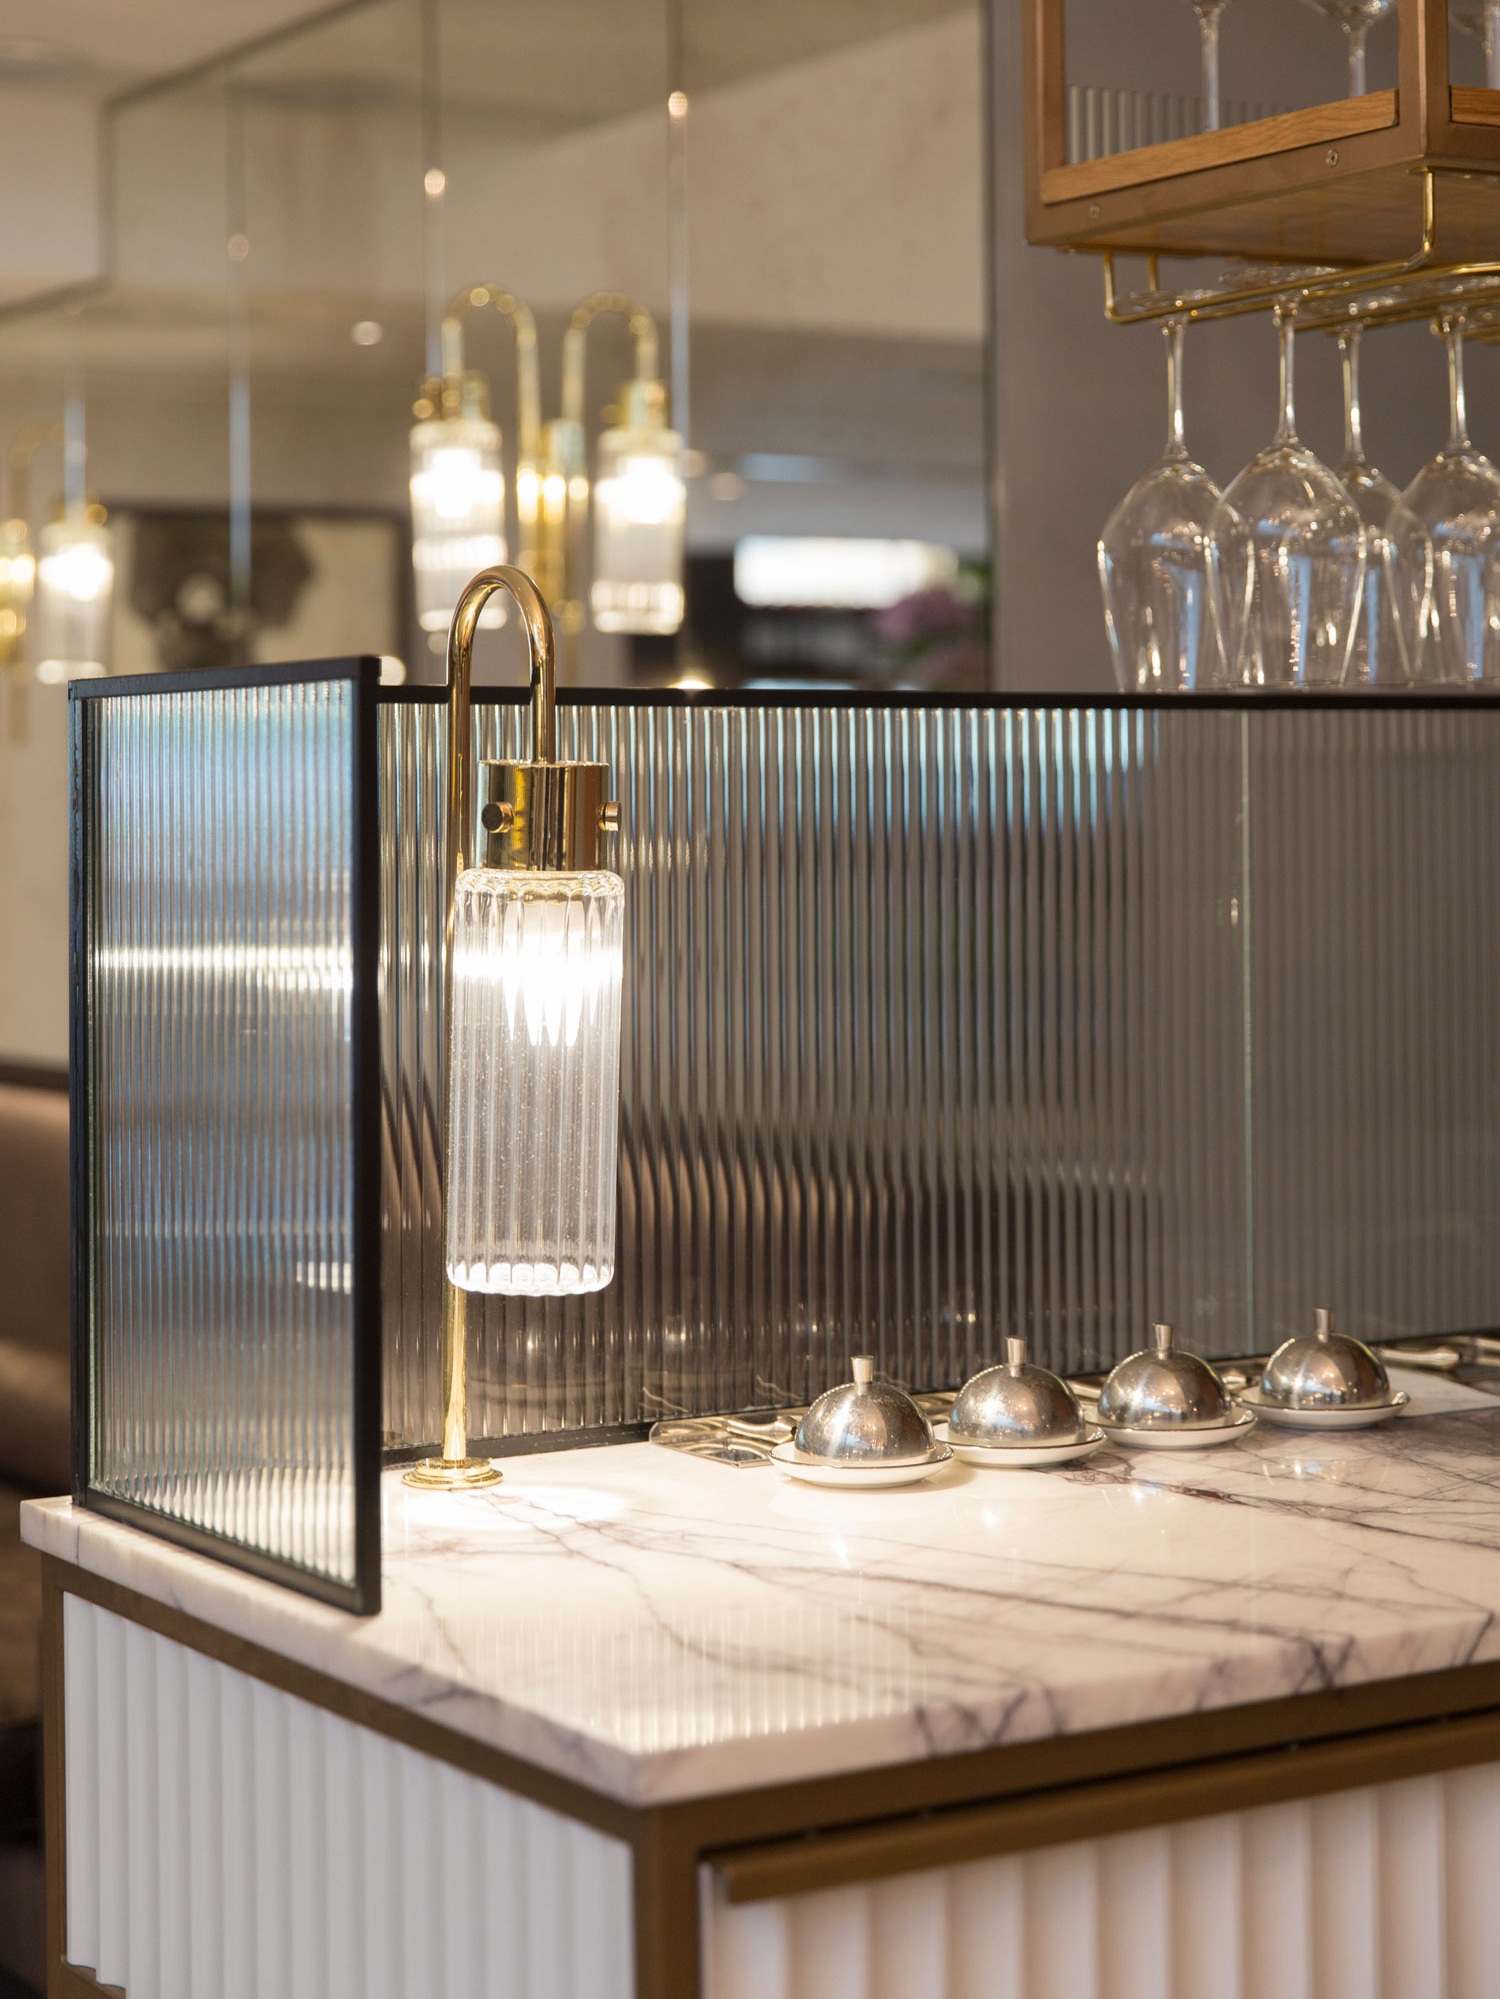 The-Athenaeum-Hotel-and-Residences-London-by-Kinnersley-Kent-Design-Yellowtrace-16.jpg